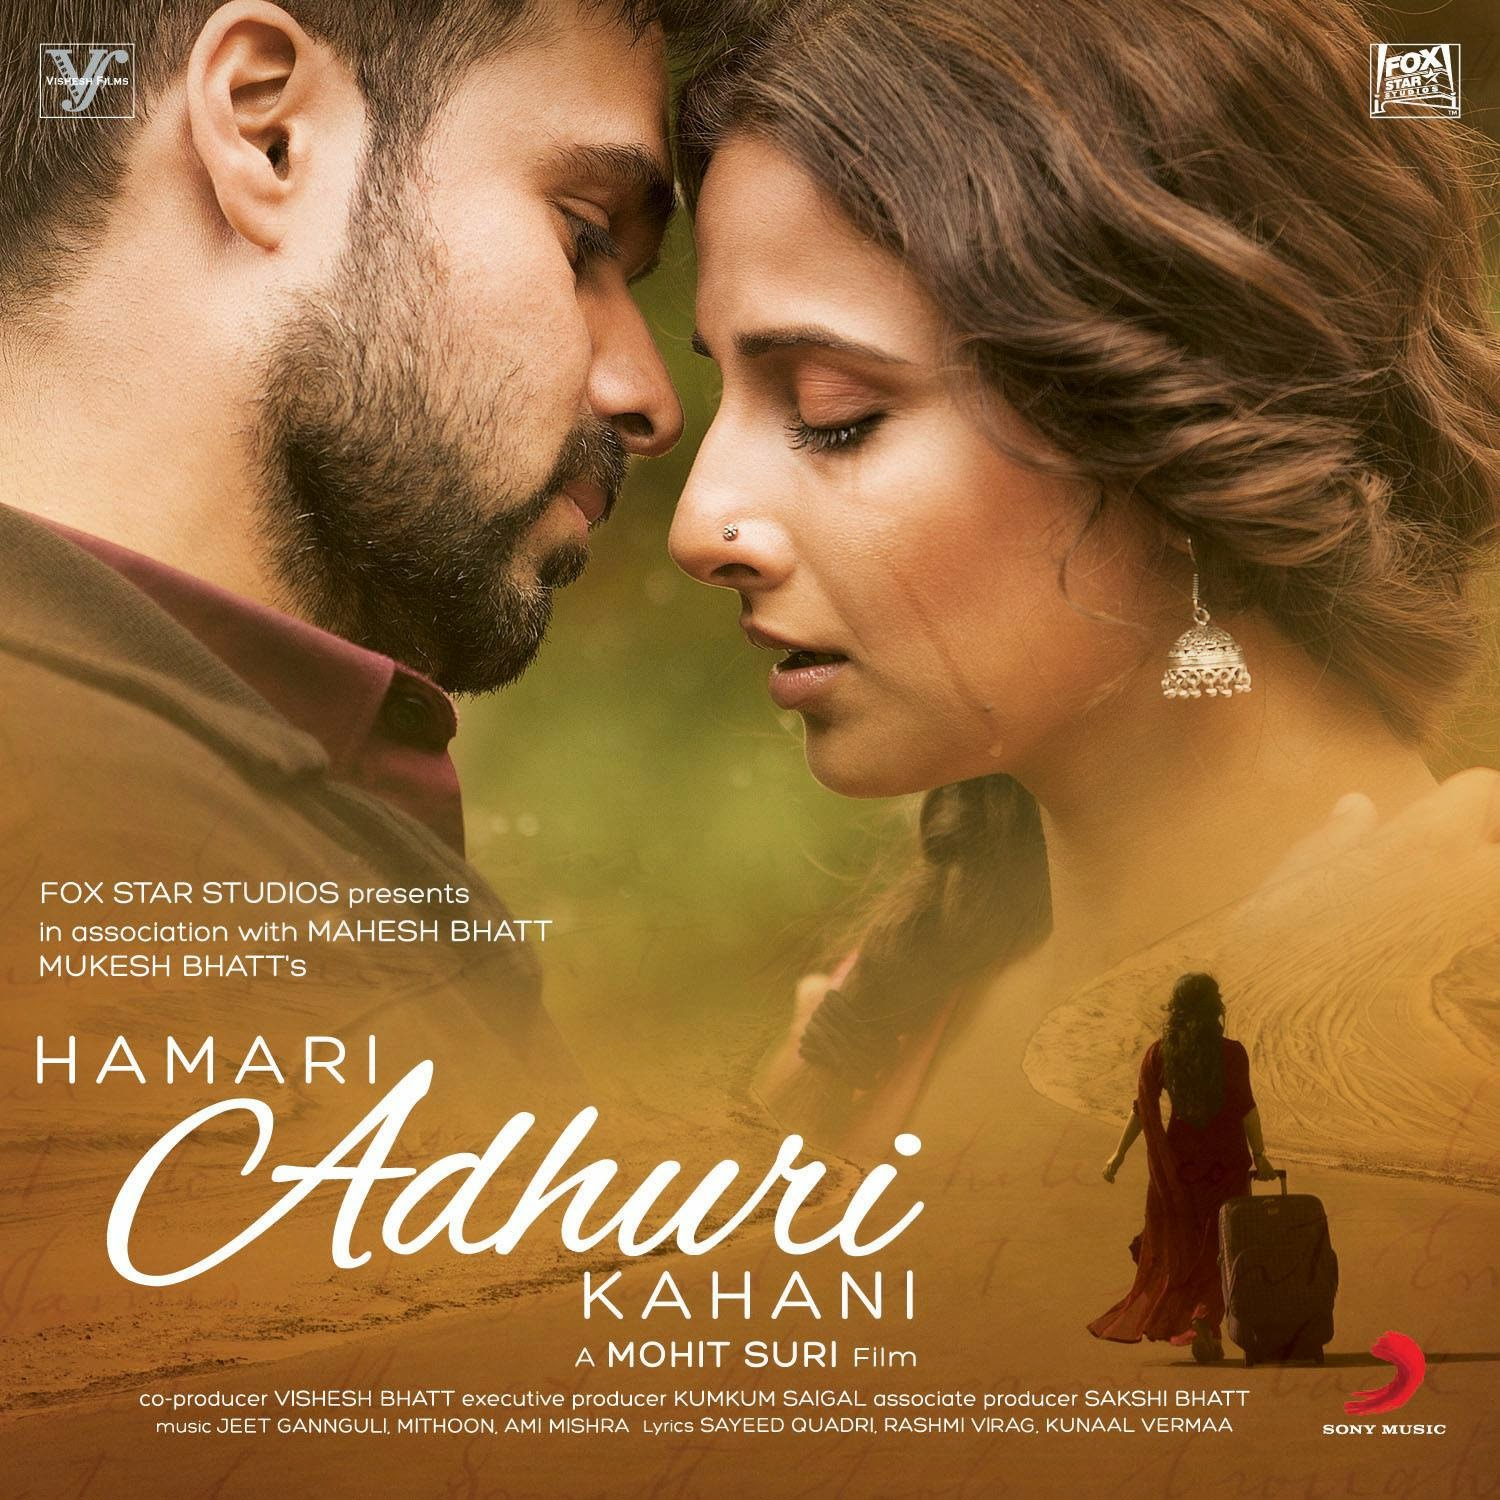 hamari adhuri kahani songs on lyric